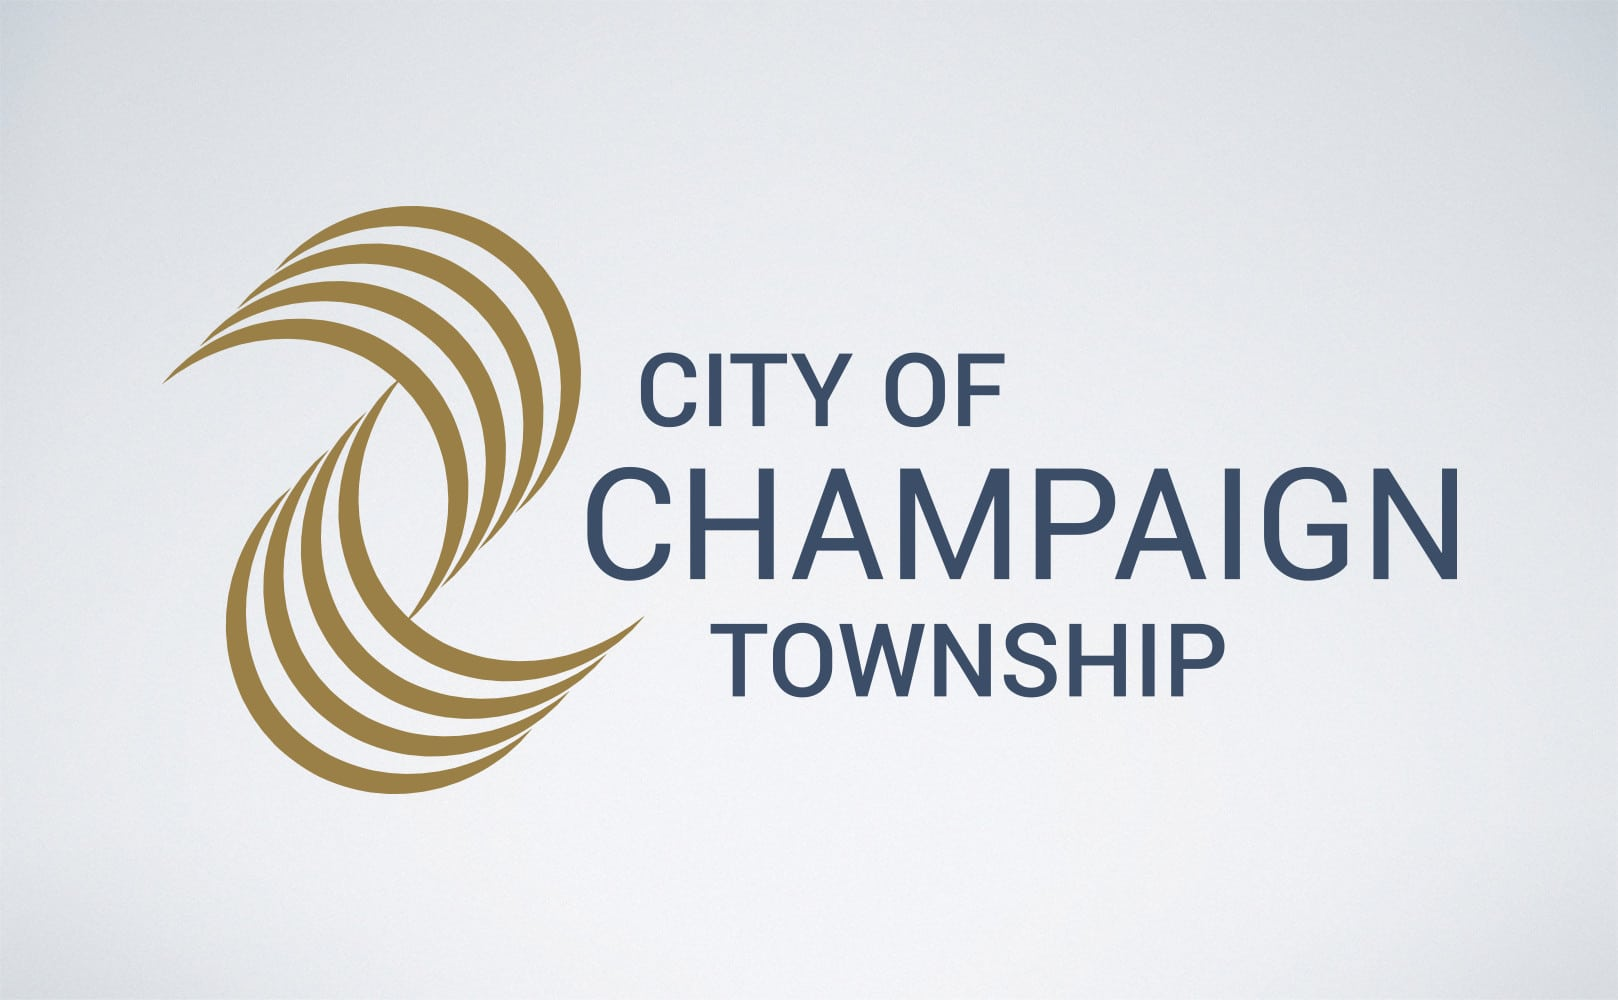 City of Champaign Township